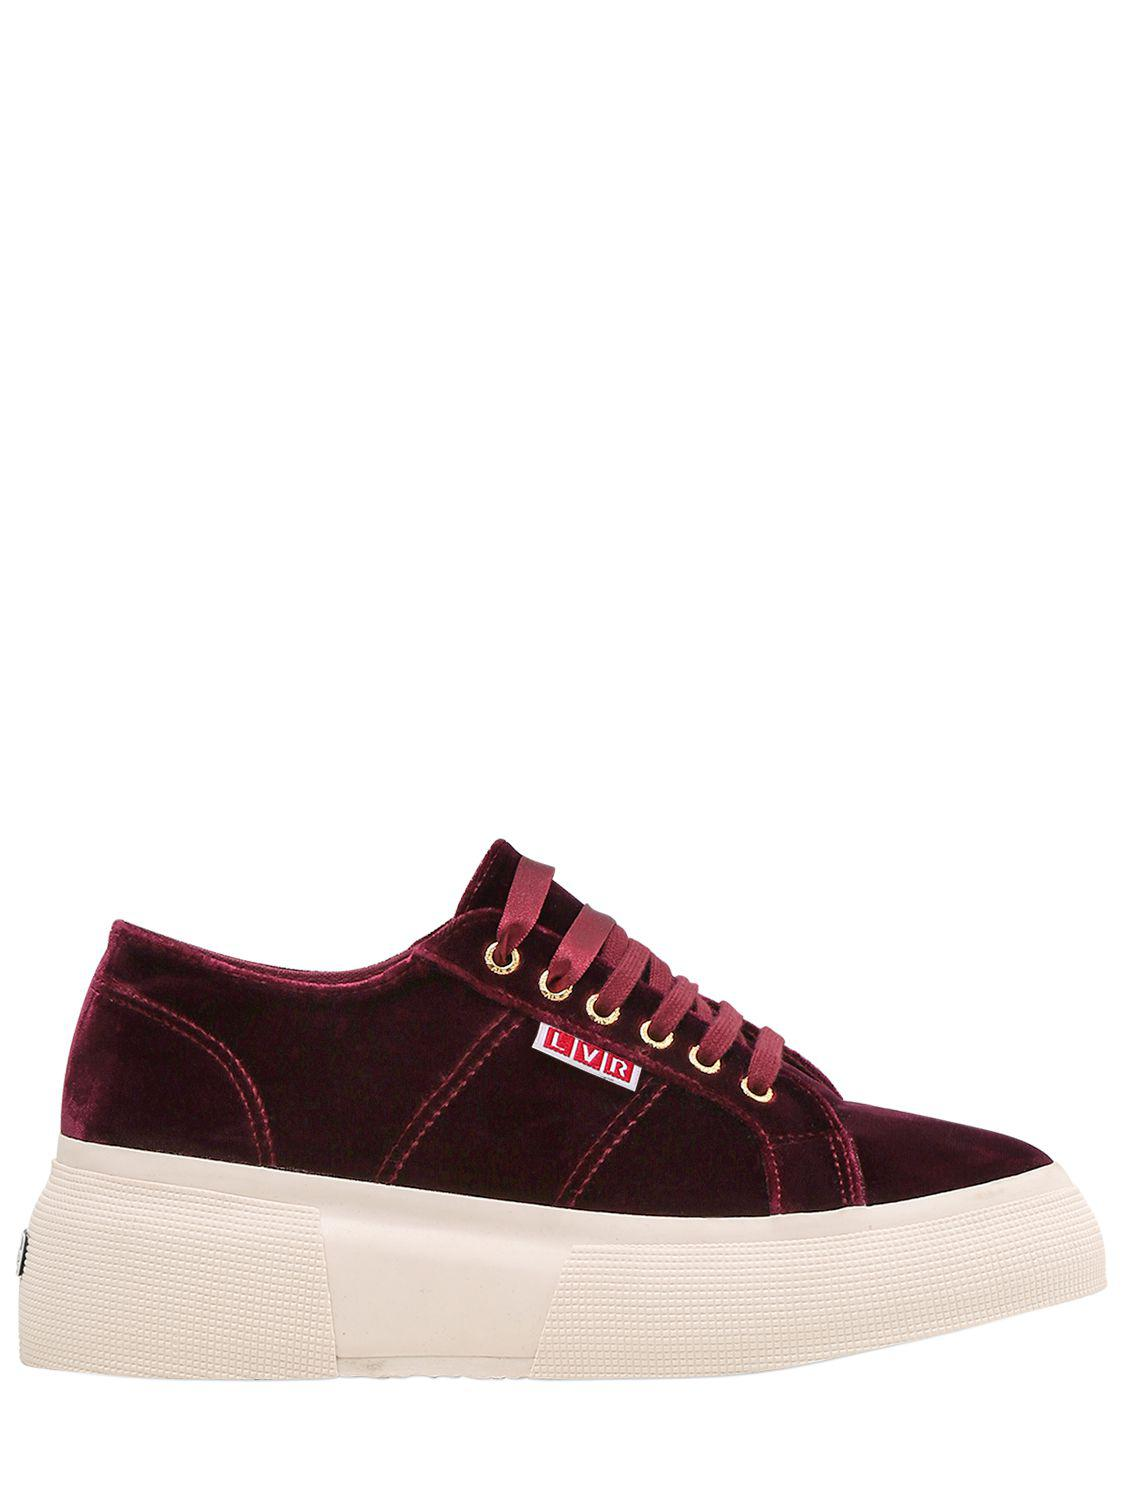 Superga. Women's Red Lvr Editions Velvet Platform Sneakers